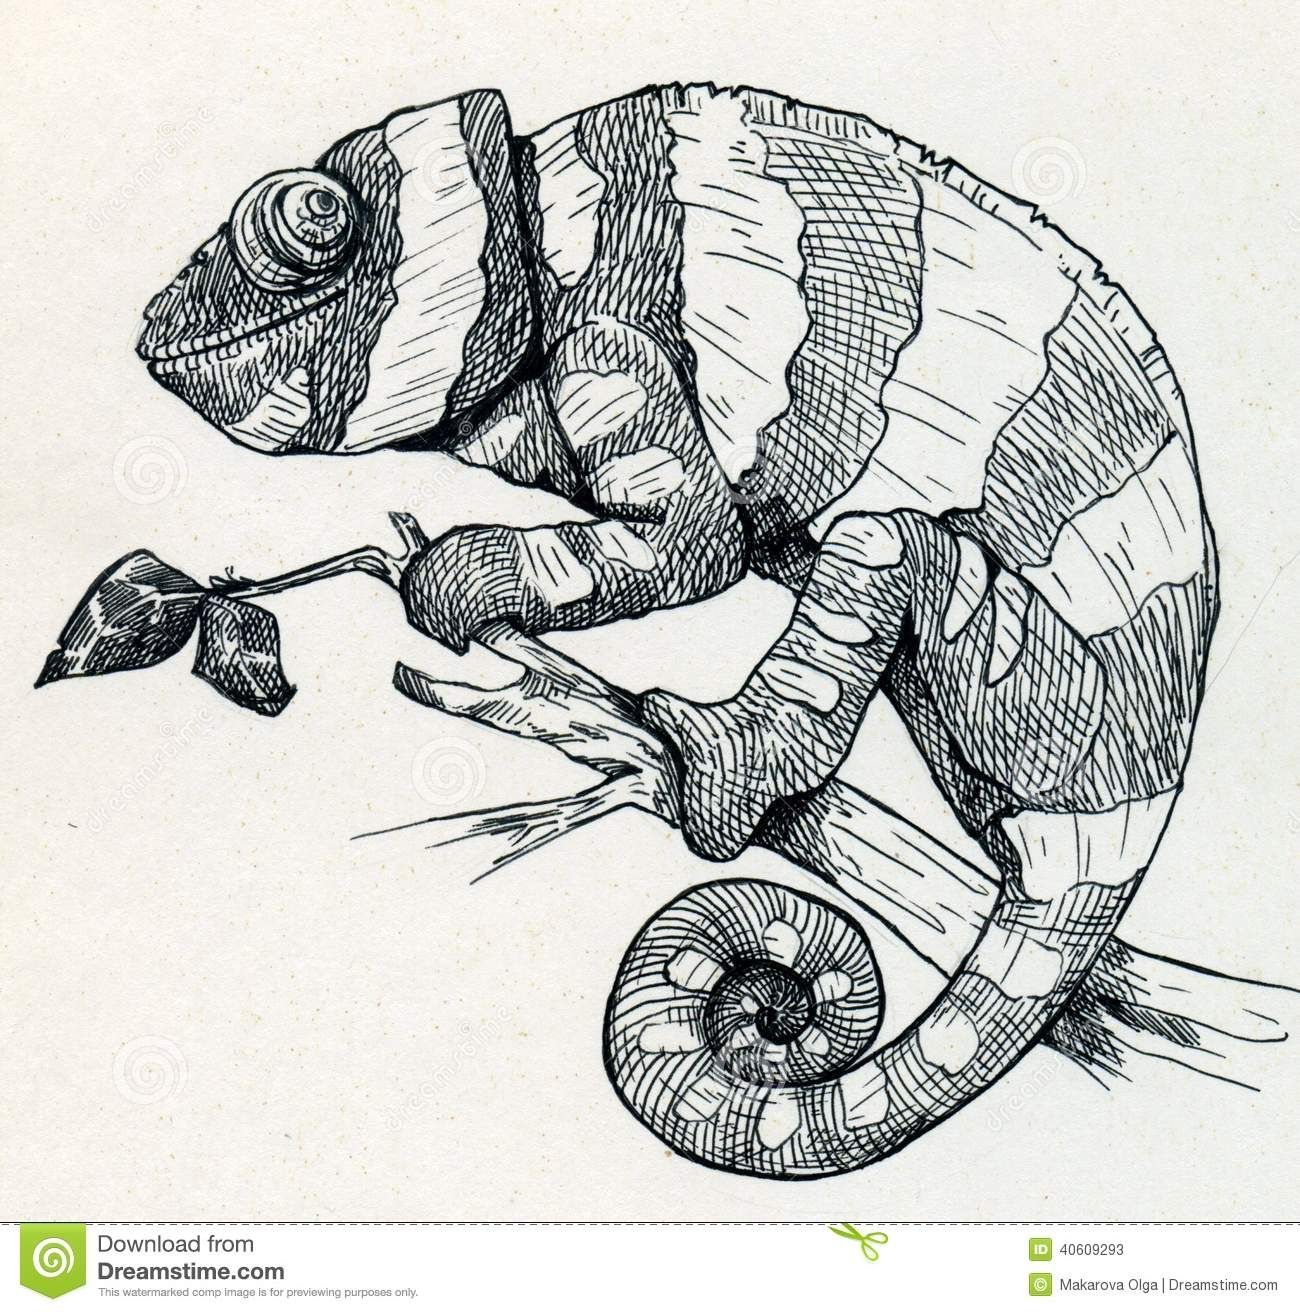 chameleon drawing - Google Search | Illustrations ...